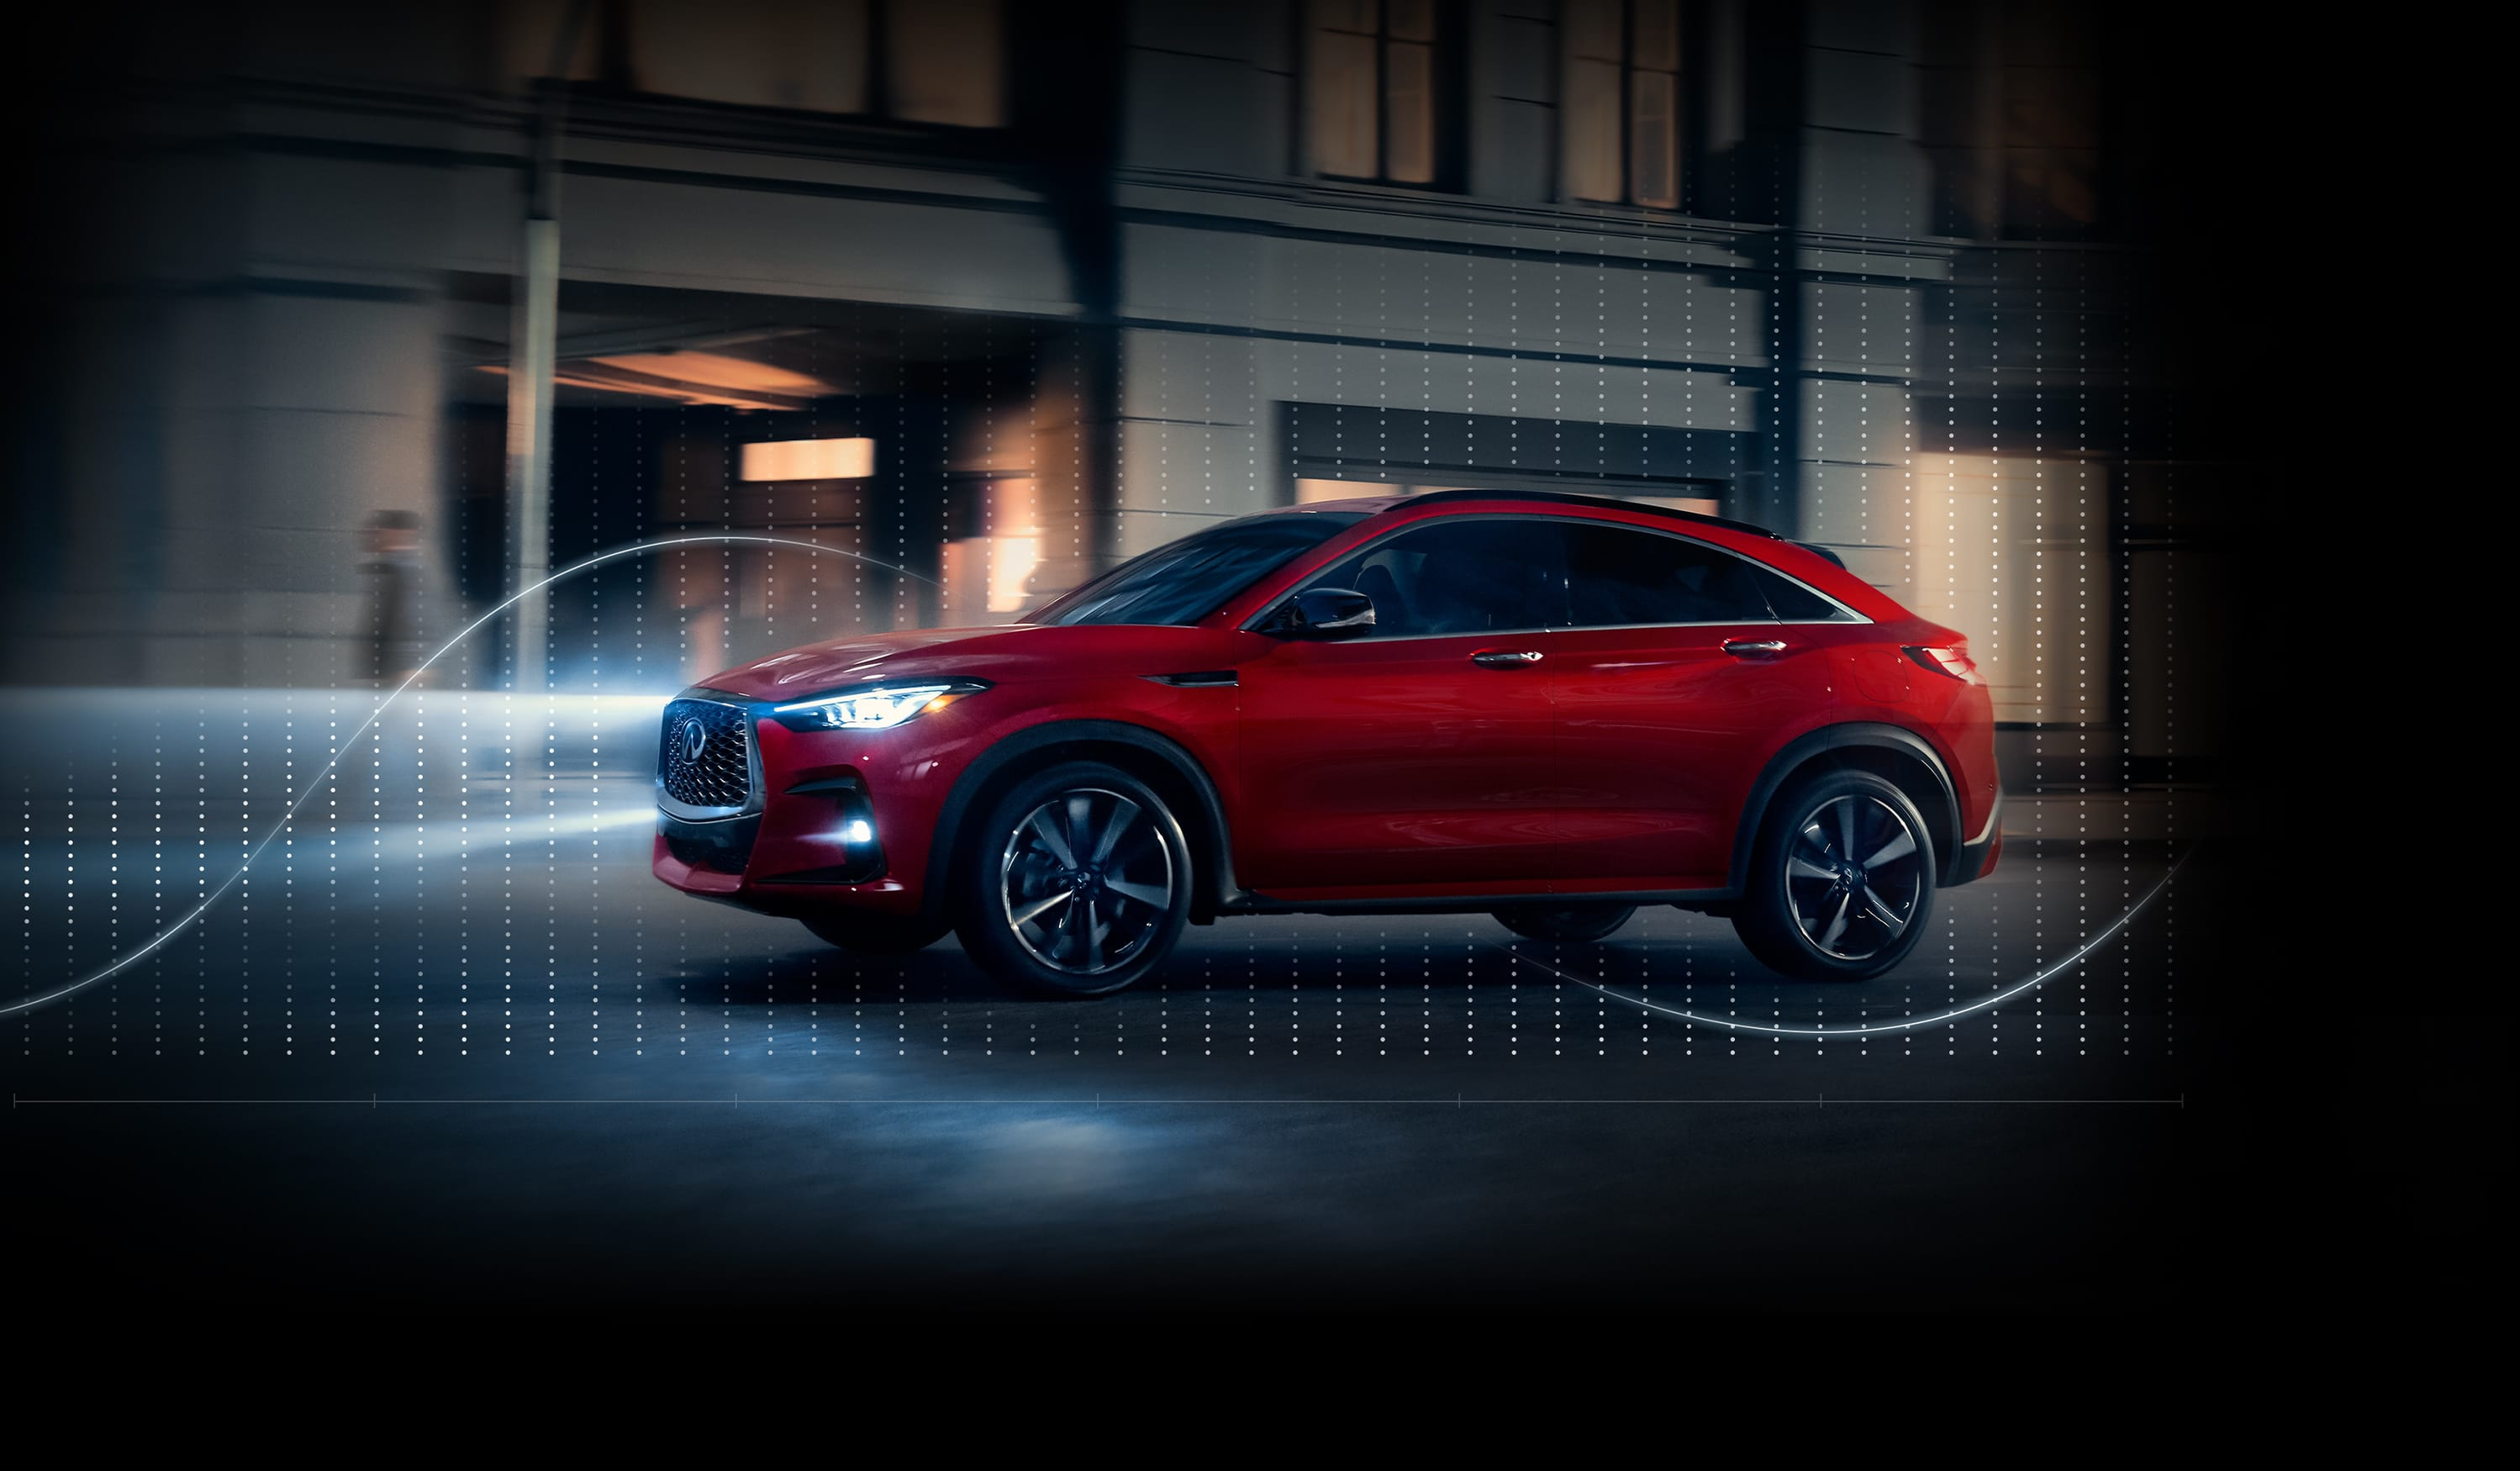 RESERVE YOUR ALL-NEW <span>QX55 TODAY<sup>1</sup></span>